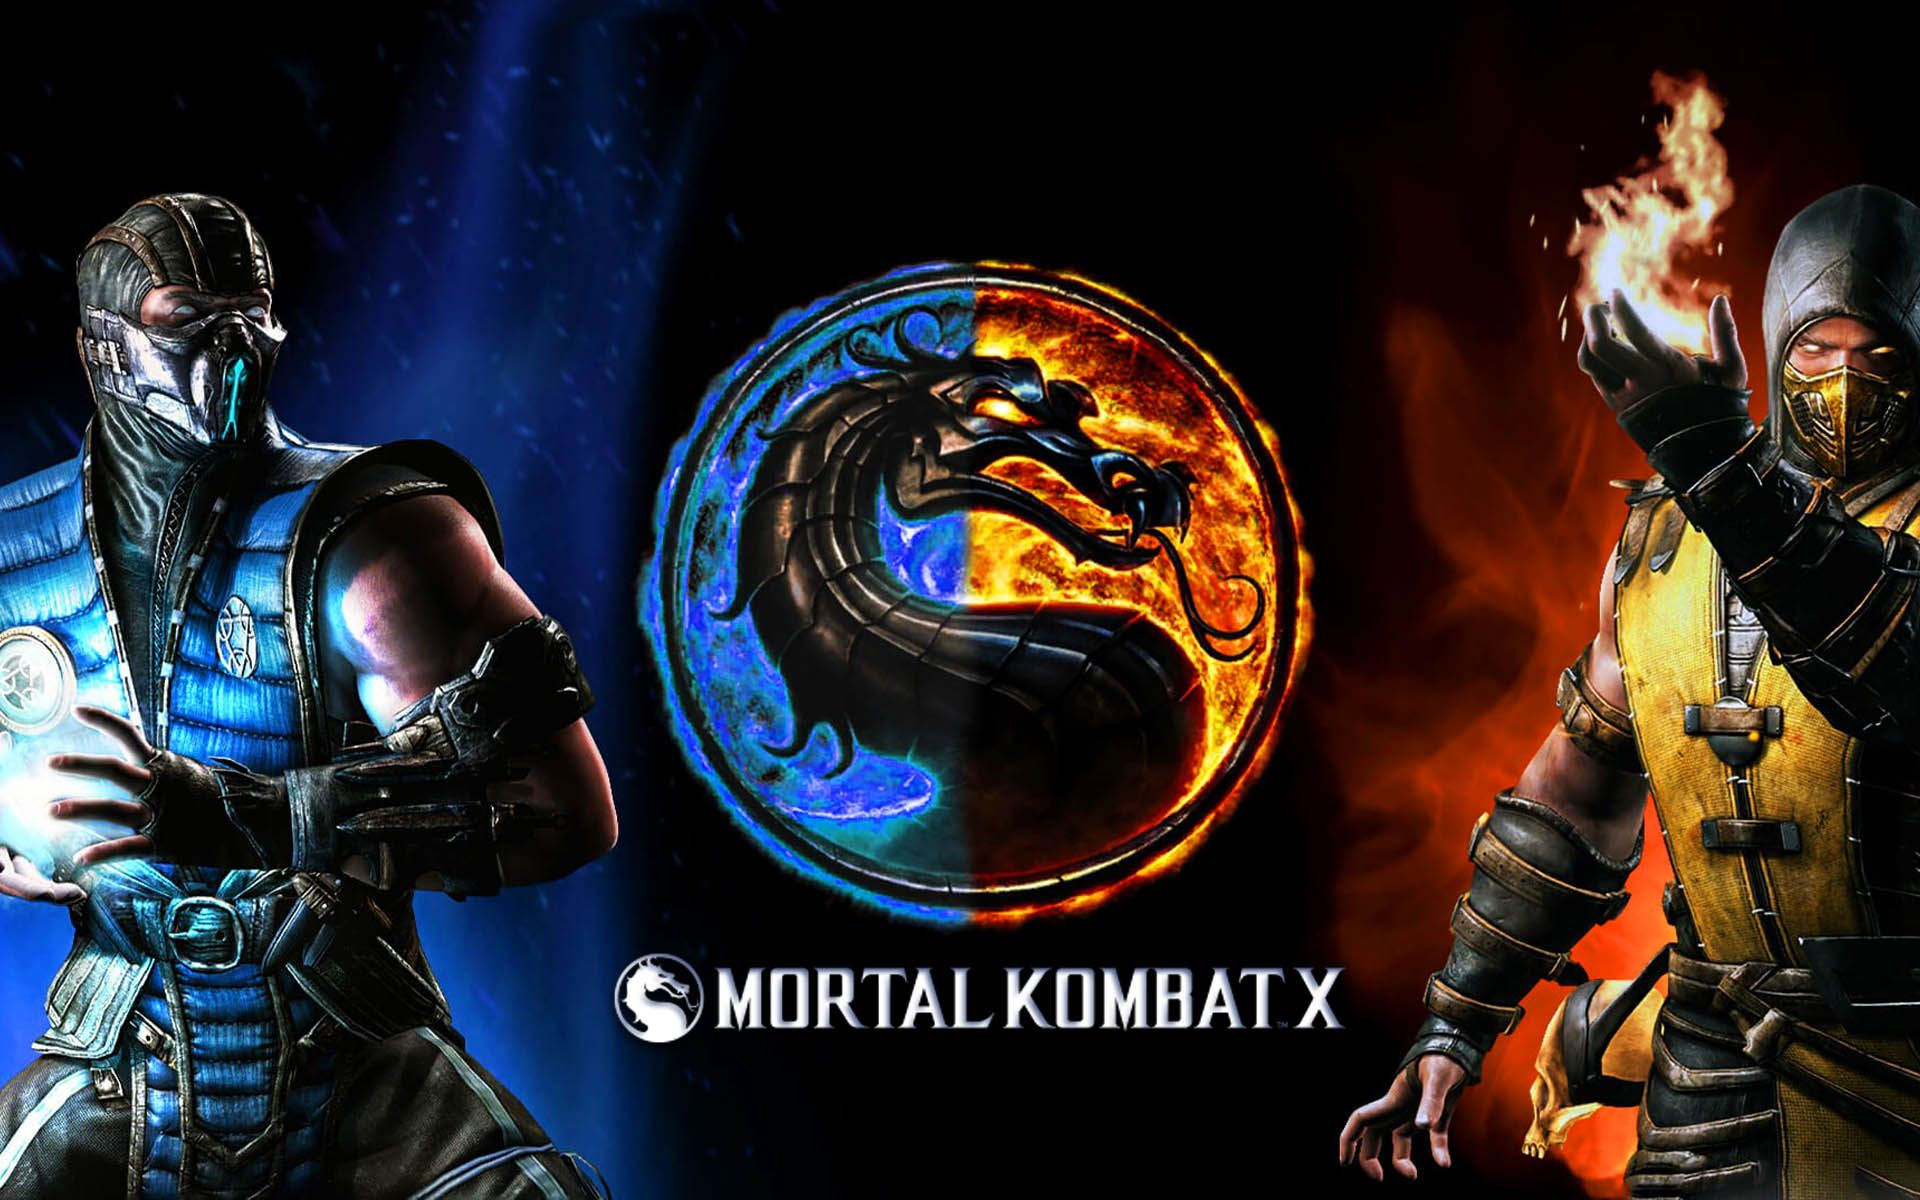 Mortal Kombat X Subzero Vs Scorpion Finish Him Wallpaper Com